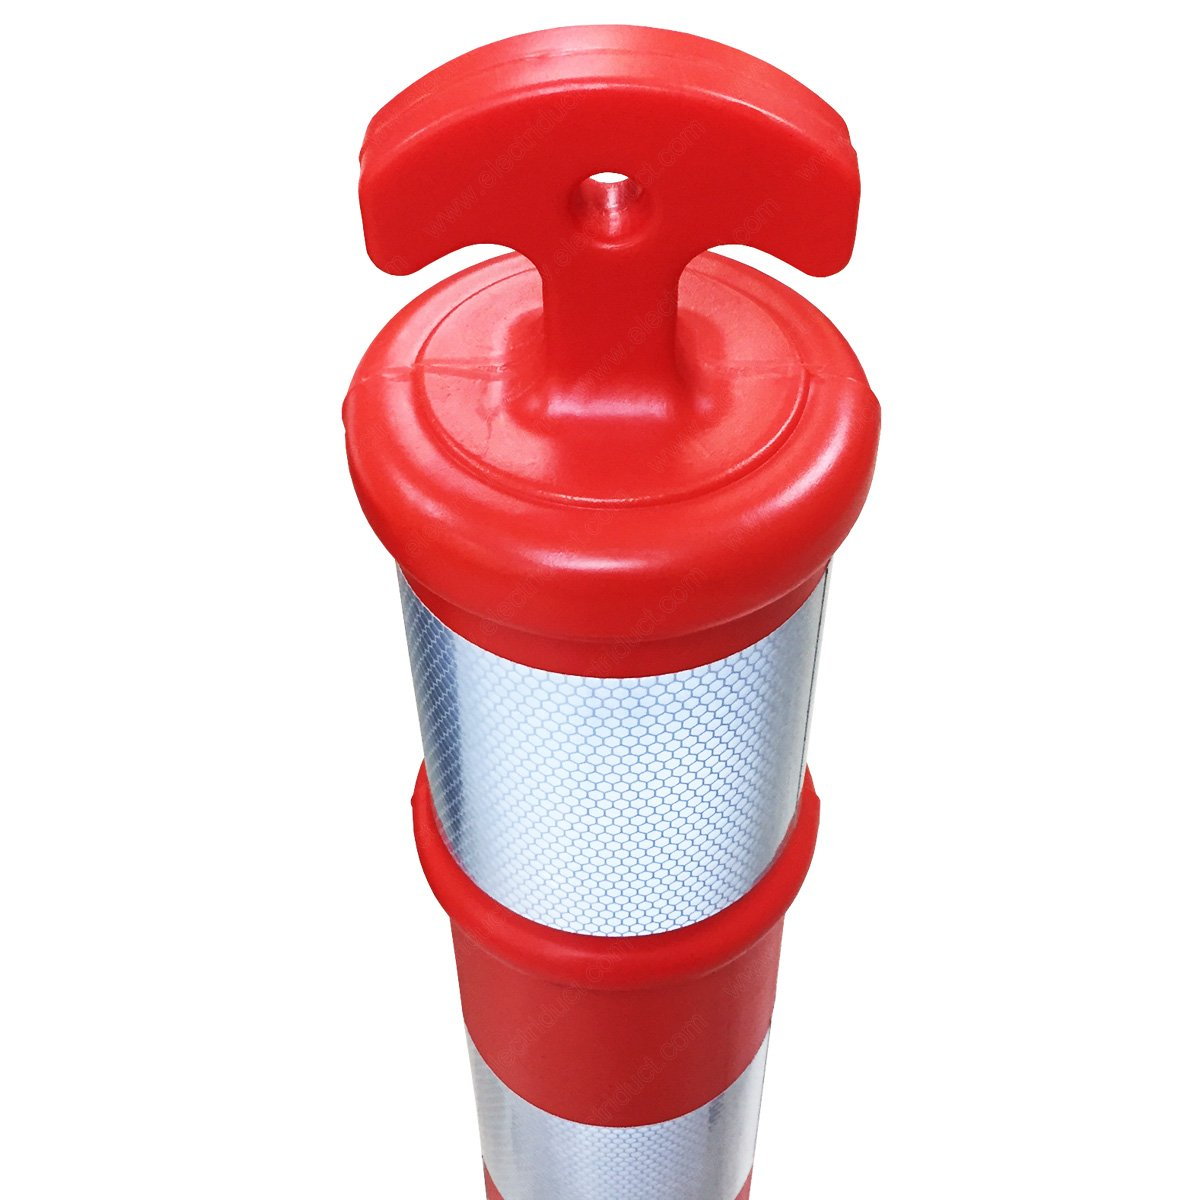 Safety Orange 44 Traffic Delineator Post with Arrow Top Tube and Reflectors 16 Base Pack of 12